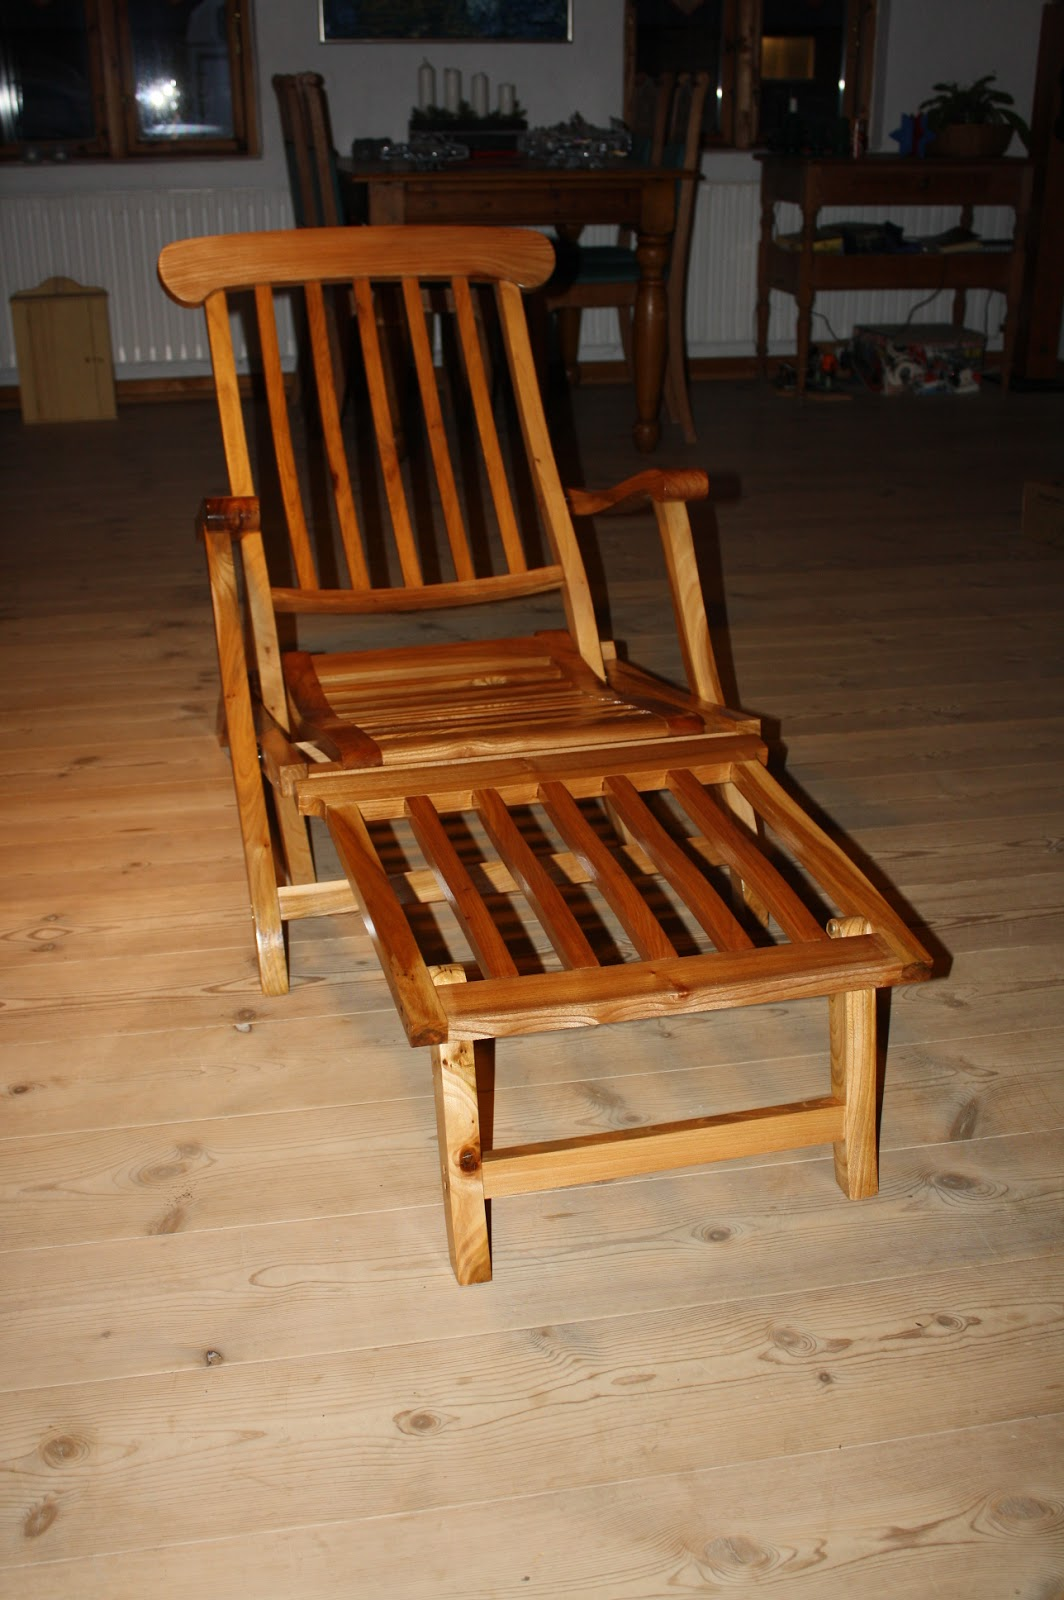 Titanic Deck Chair Mulesaw Titanic Deck Chair